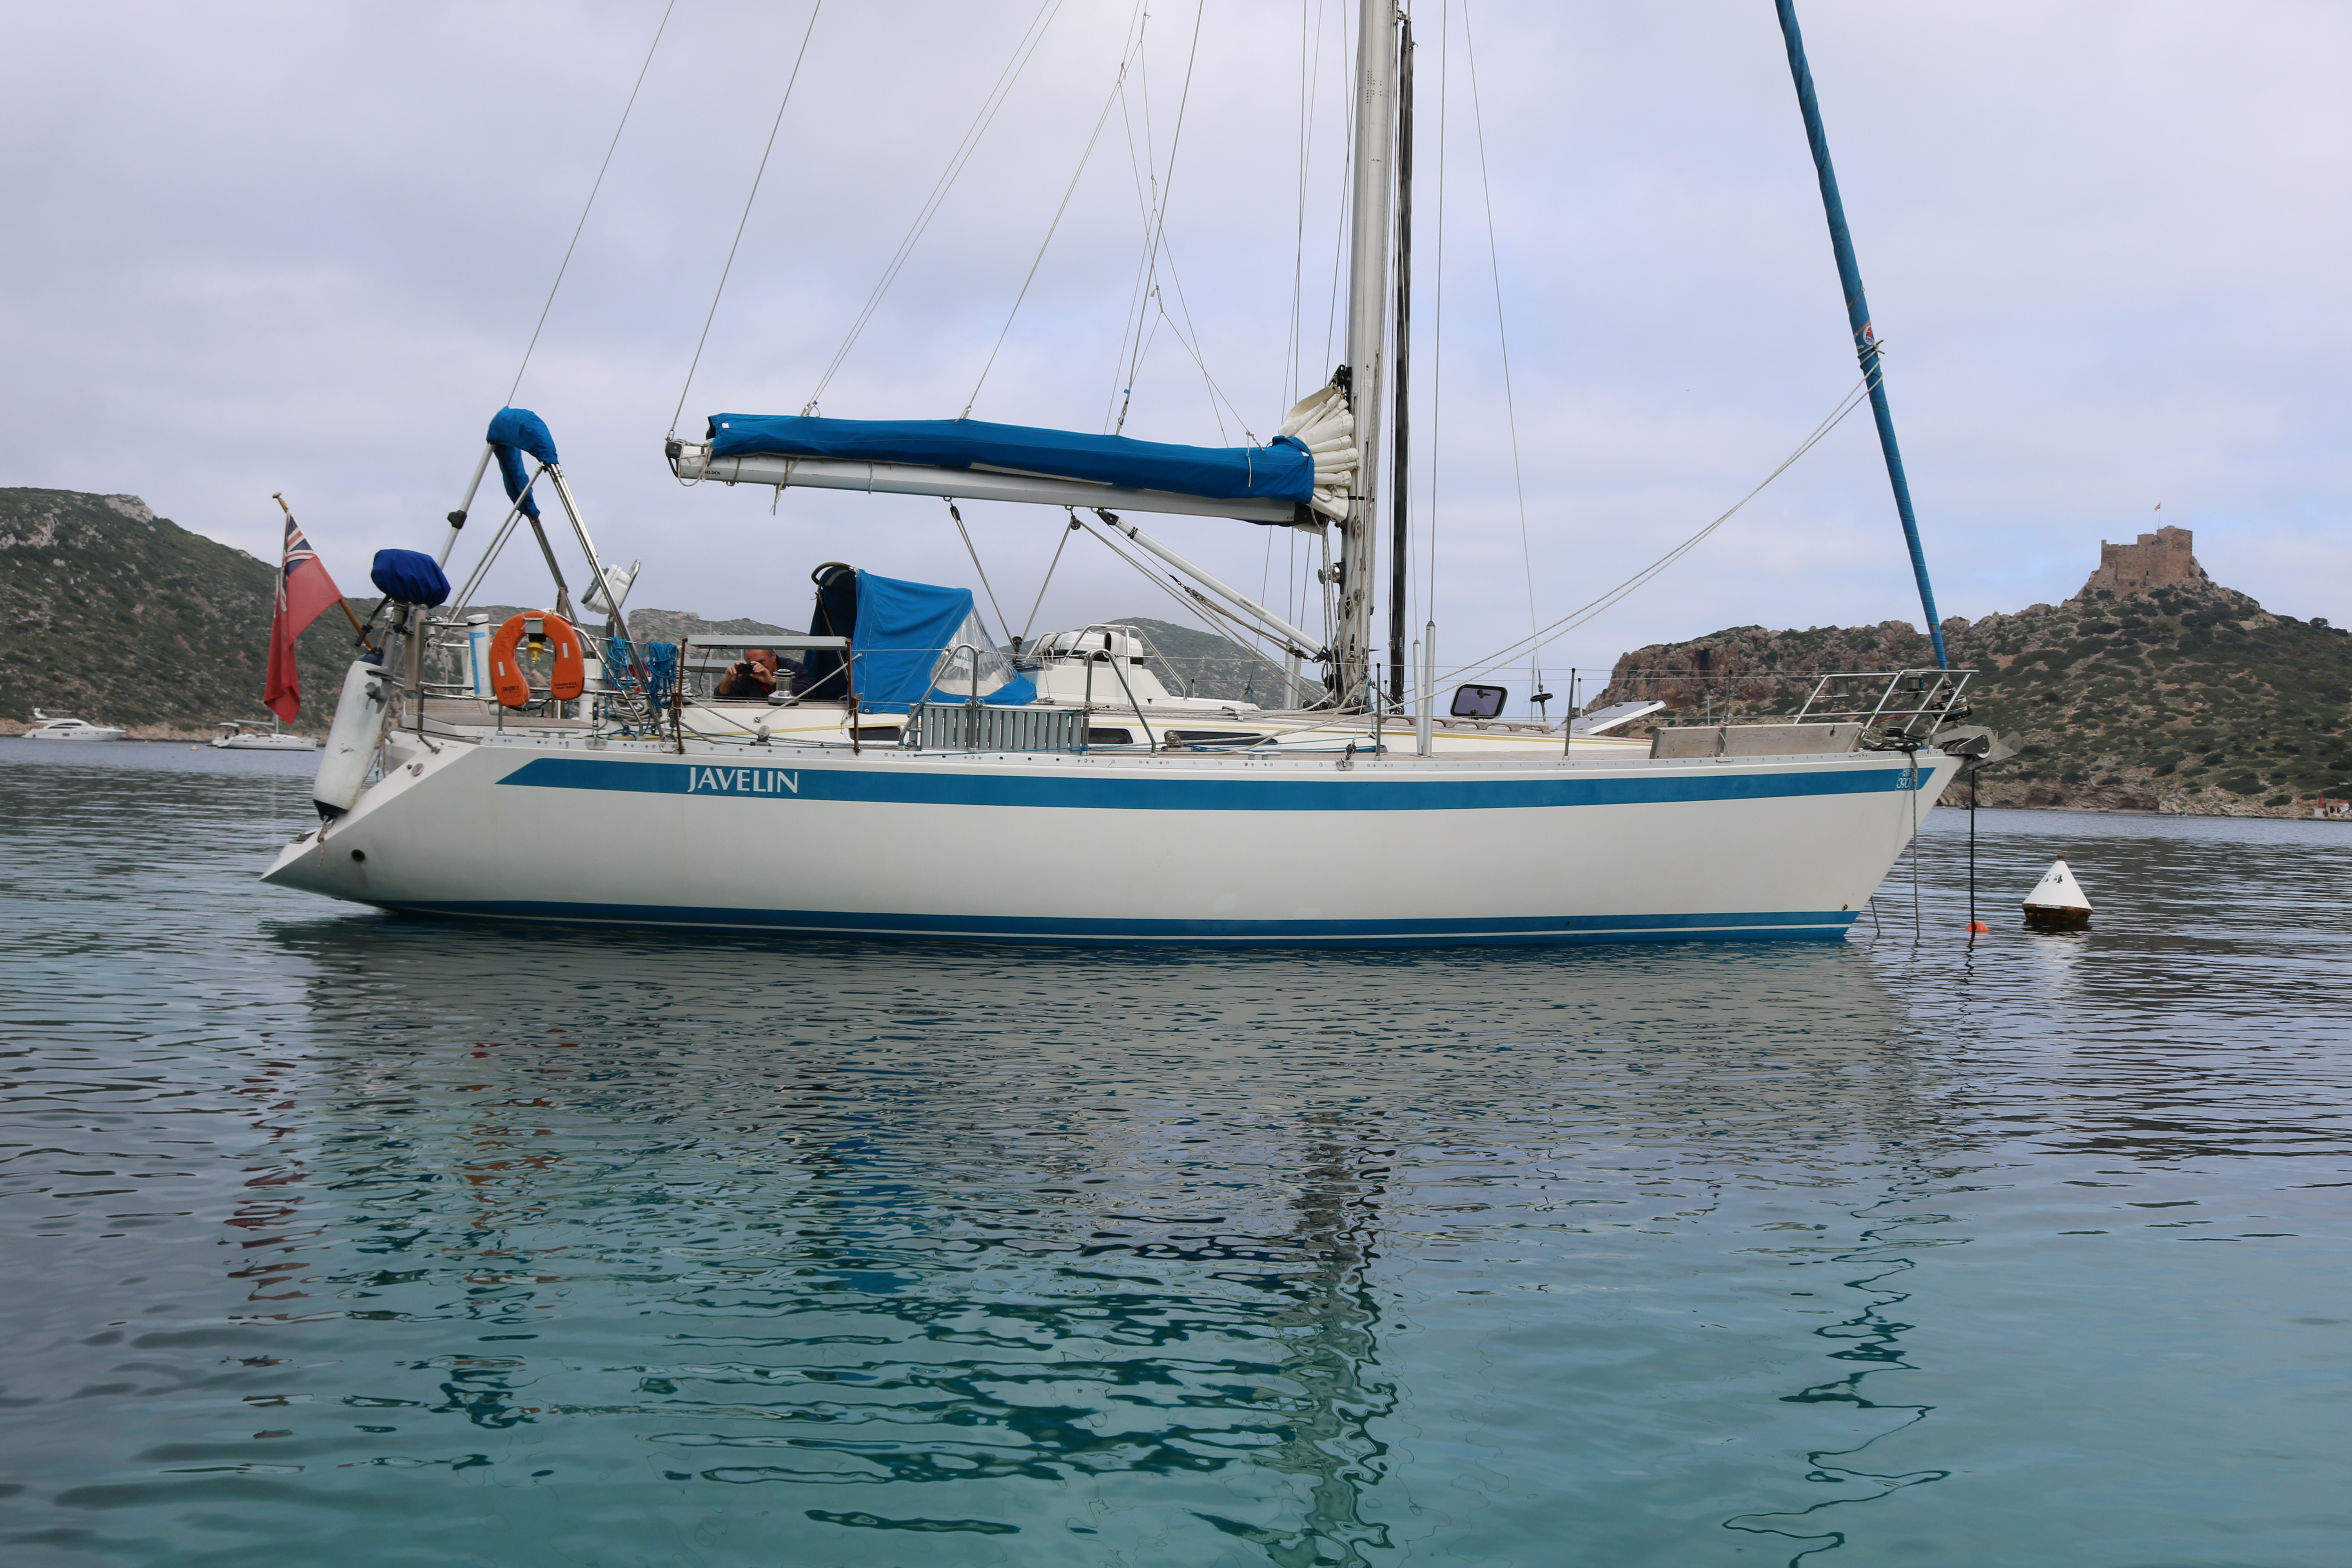 Opportunity to sail in the Mediterranean on a beautiful 39 foot Sweden yacht